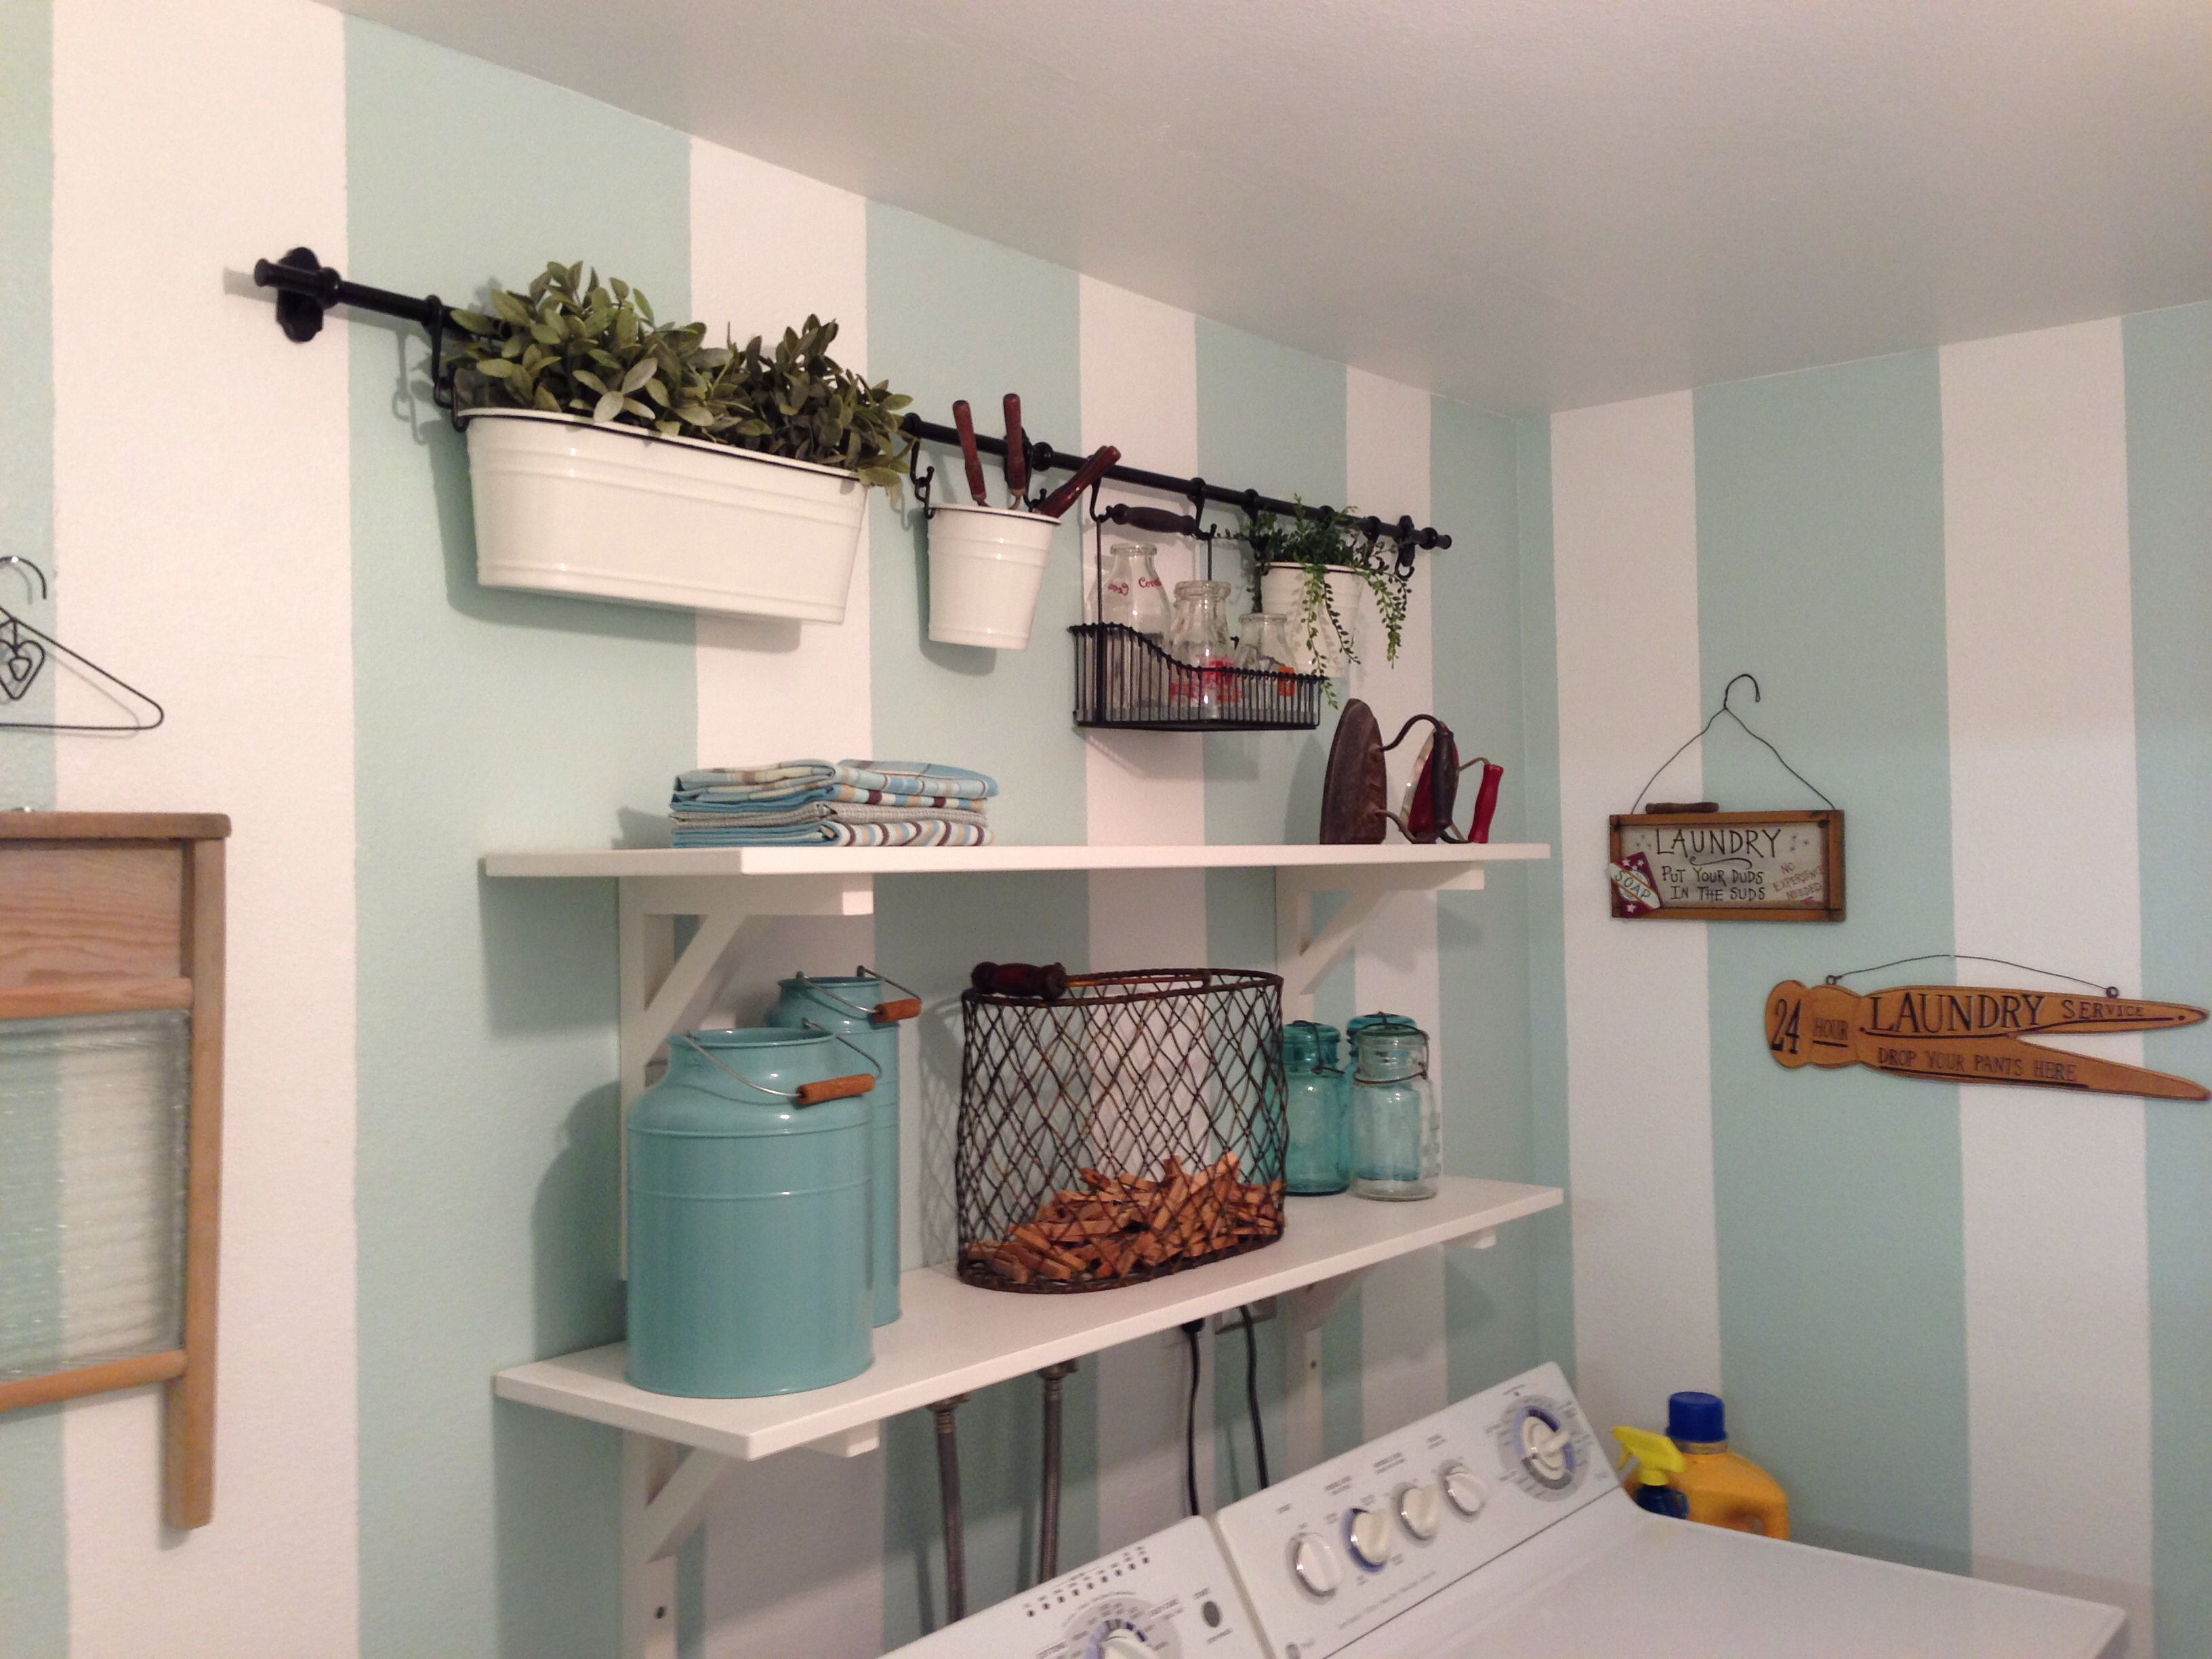 small laundry room makeover small room makeover ideas pinterest. Black Bedroom Furniture Sets. Home Design Ideas